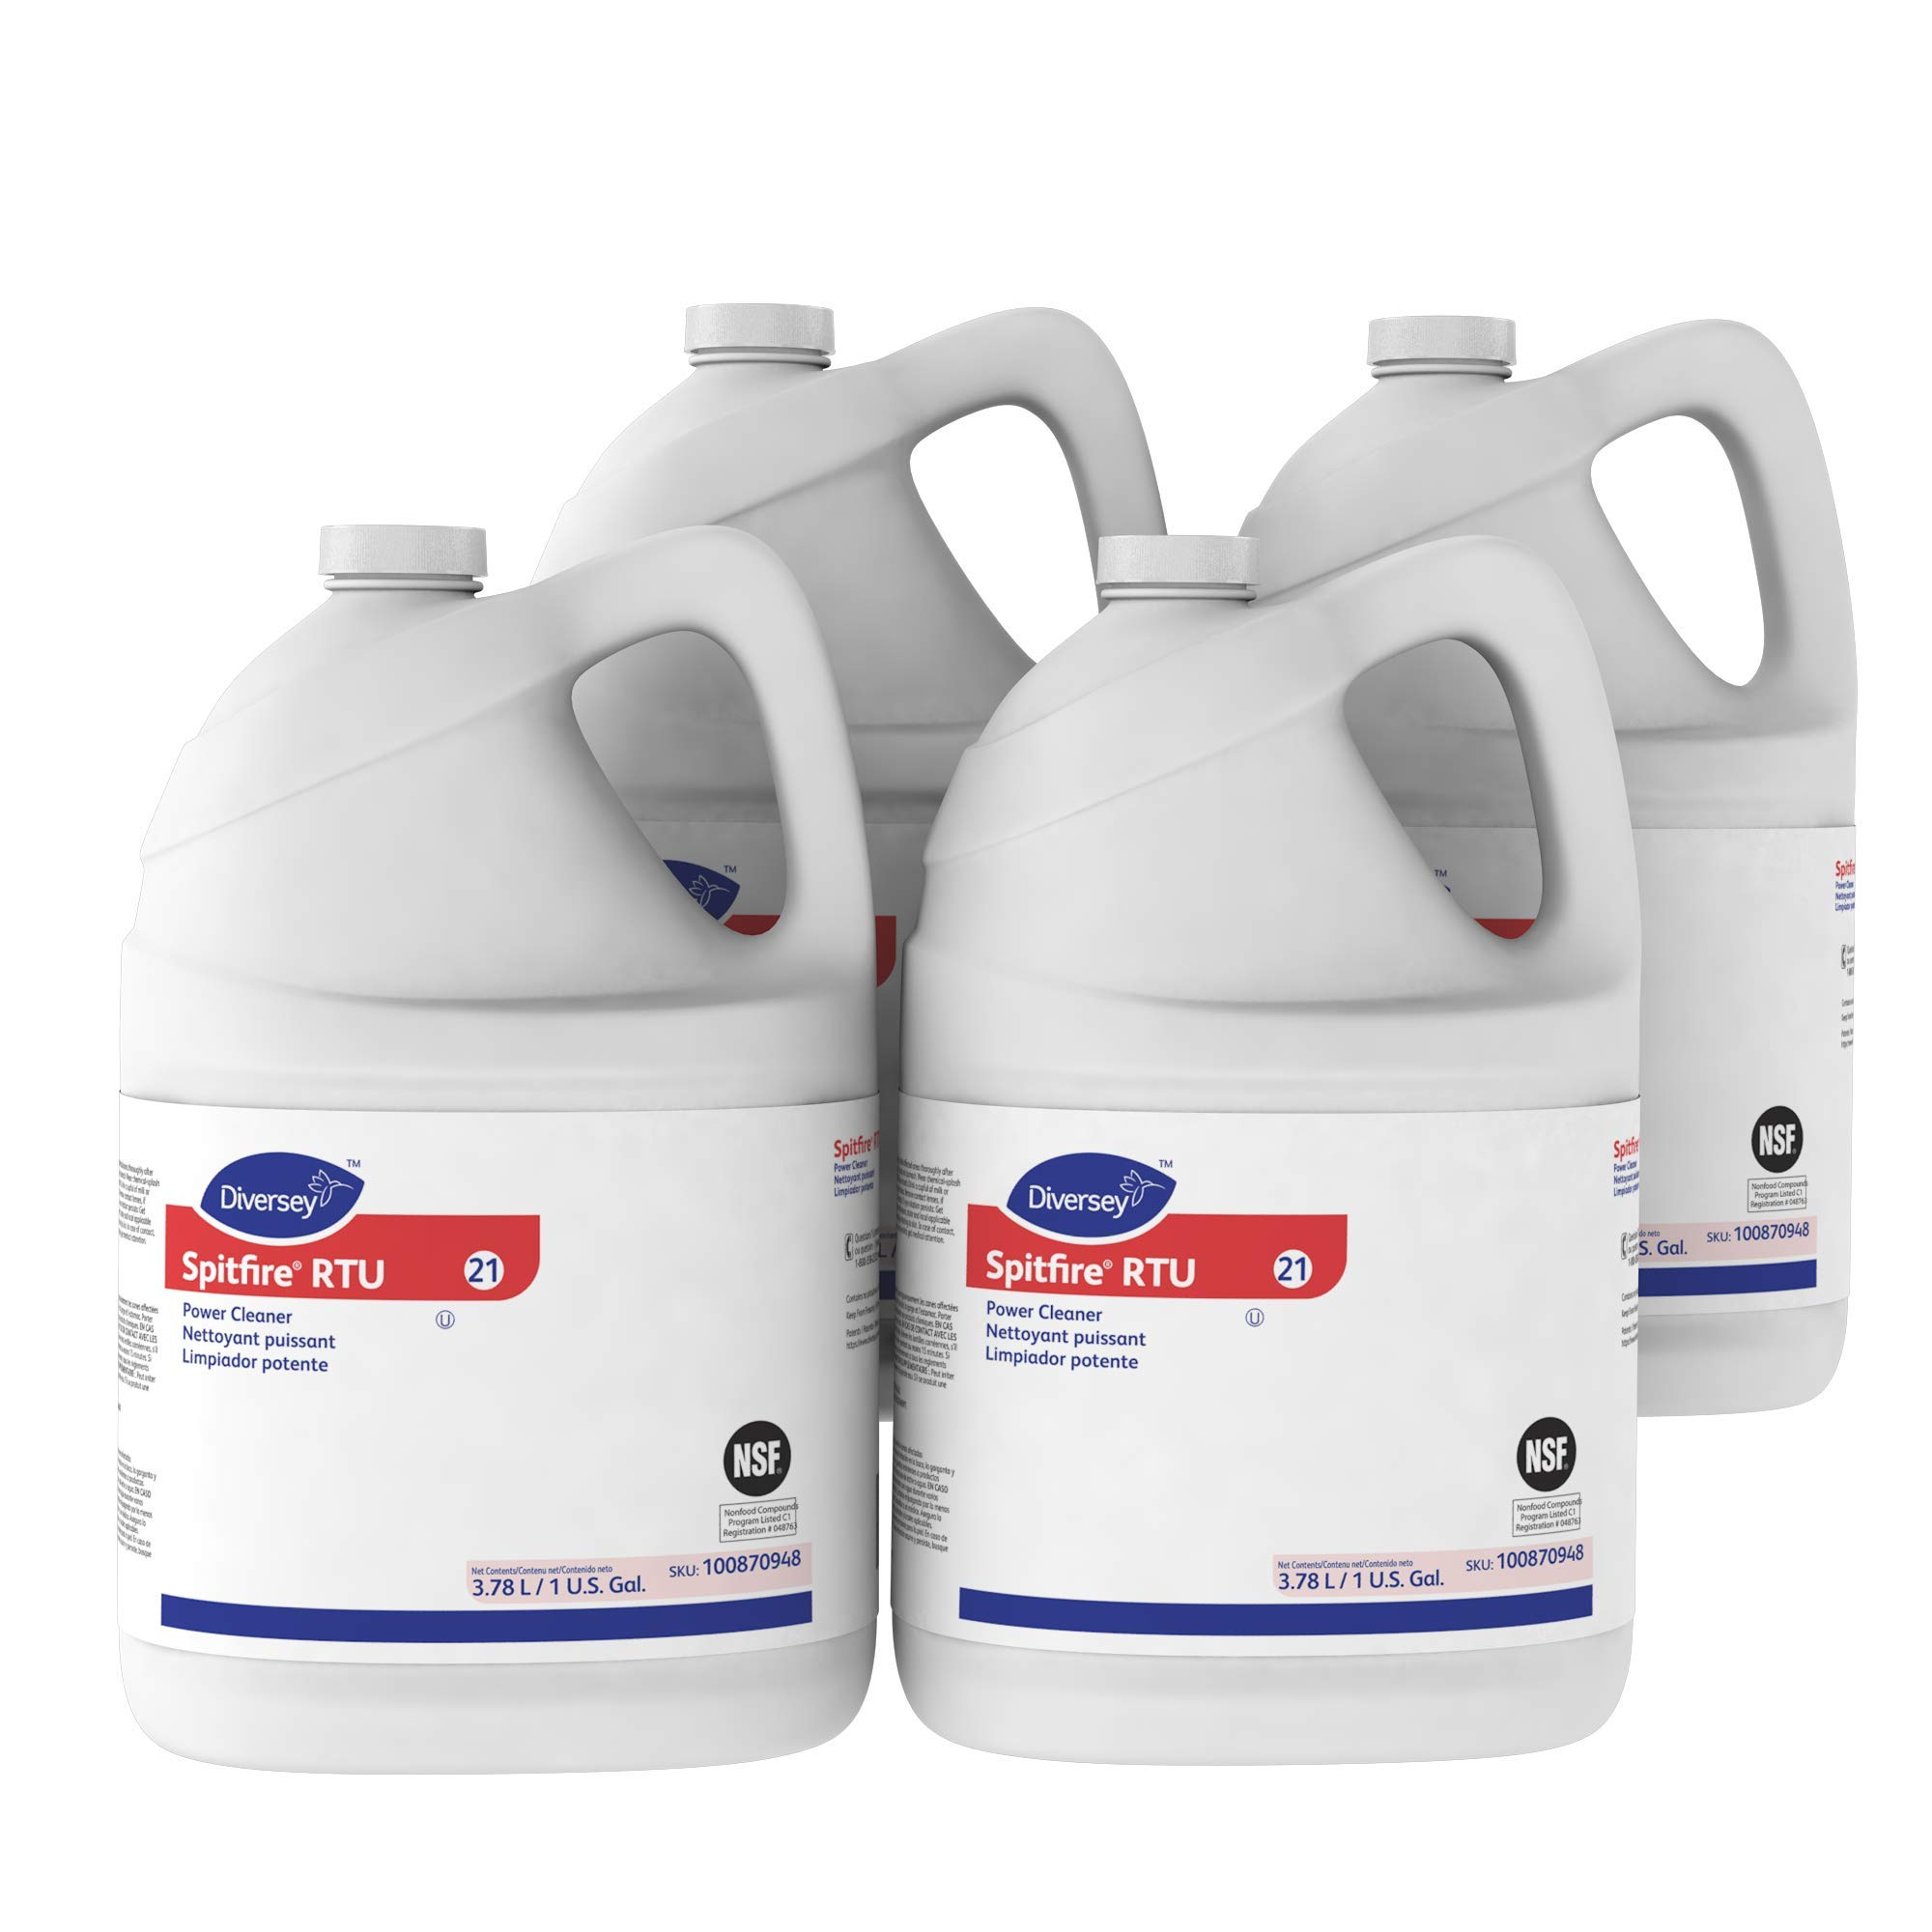 Diversey Spitfire Professional All Purpose Power Cleaner and Degreaser, 1 Gallon (4 Pack)